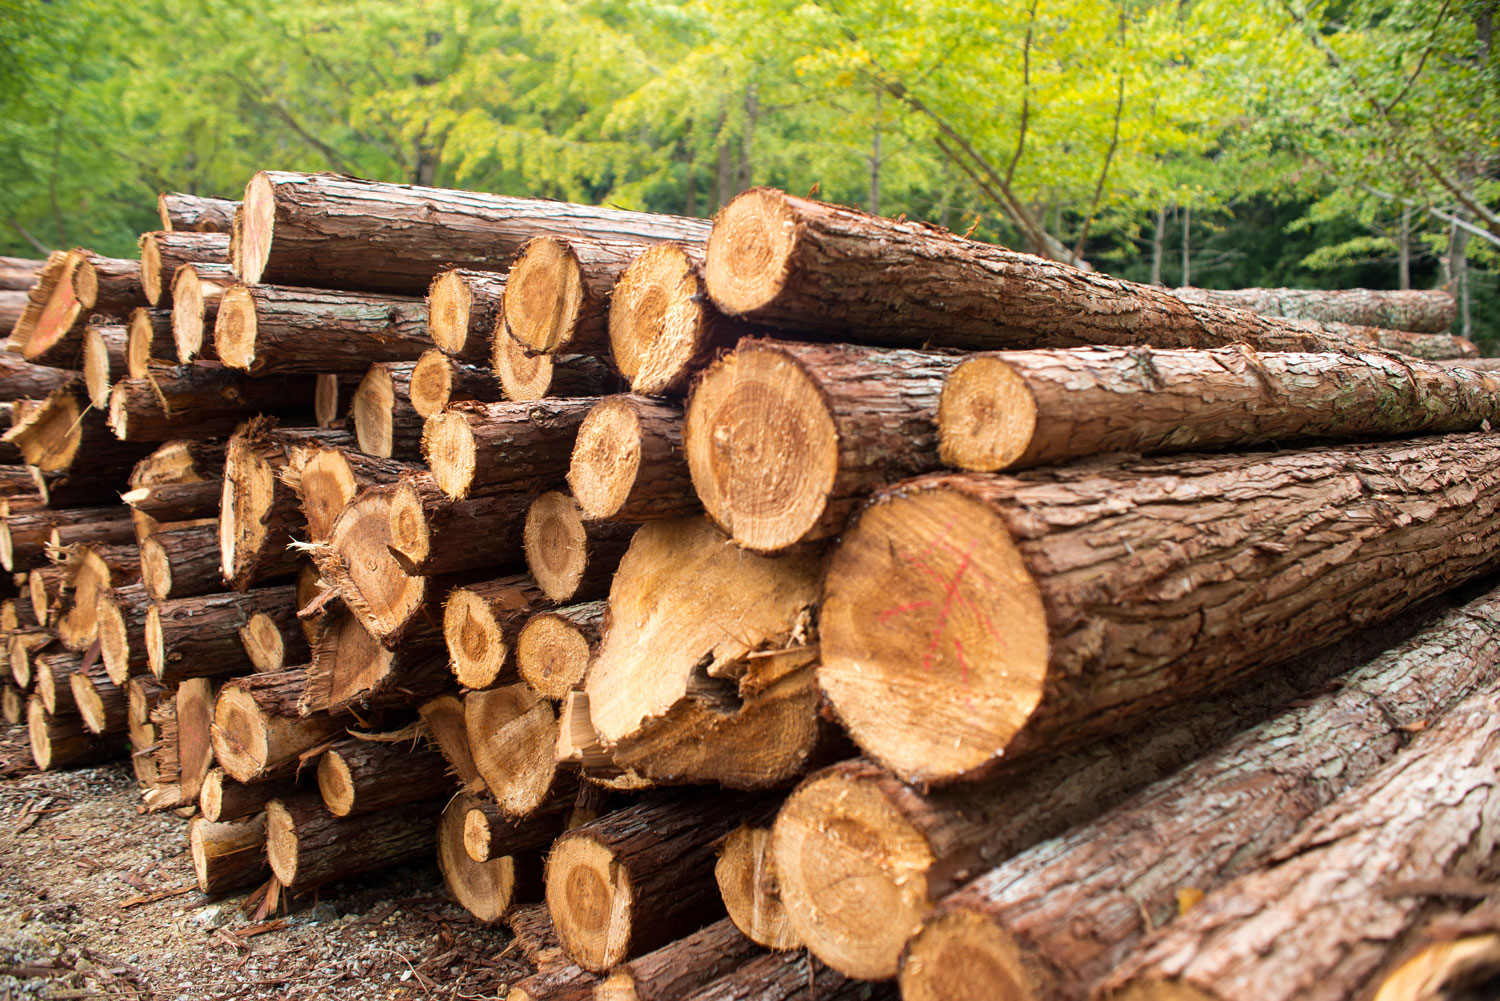 LAND-JOURNAL-Blog-Awareness-How-To-Successfully-Invest-In-Florida's-Timber-Industry-2019